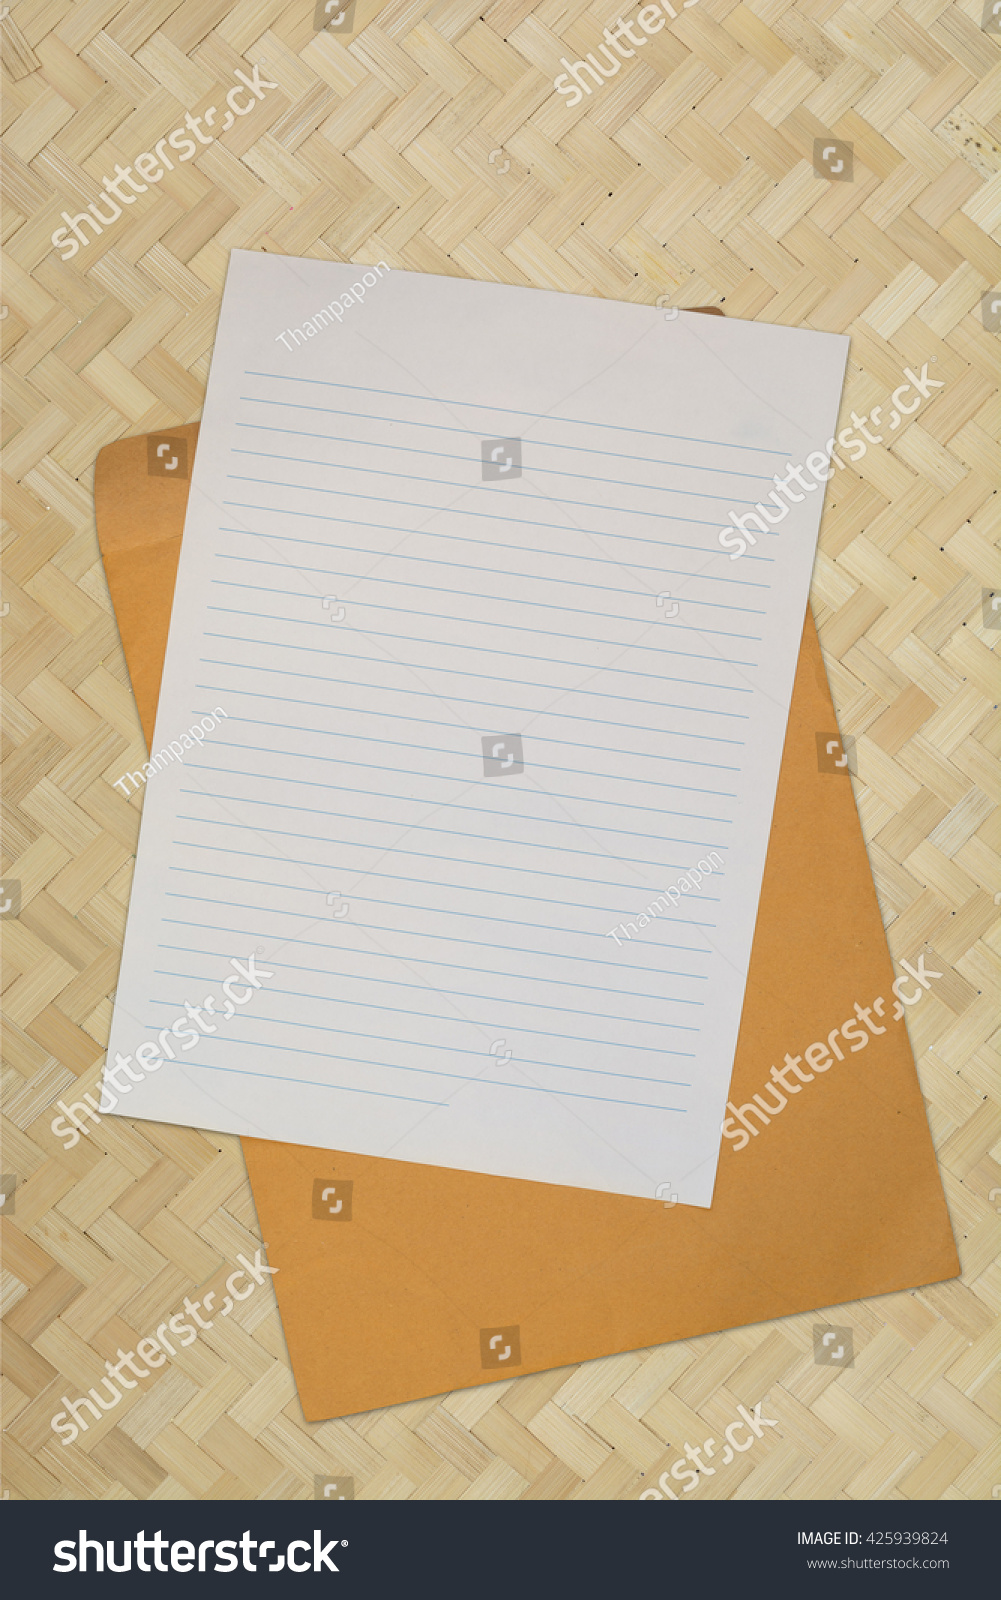 Blank Line Paper Envelope Over Bamboo Stock Photo 425939824 ...